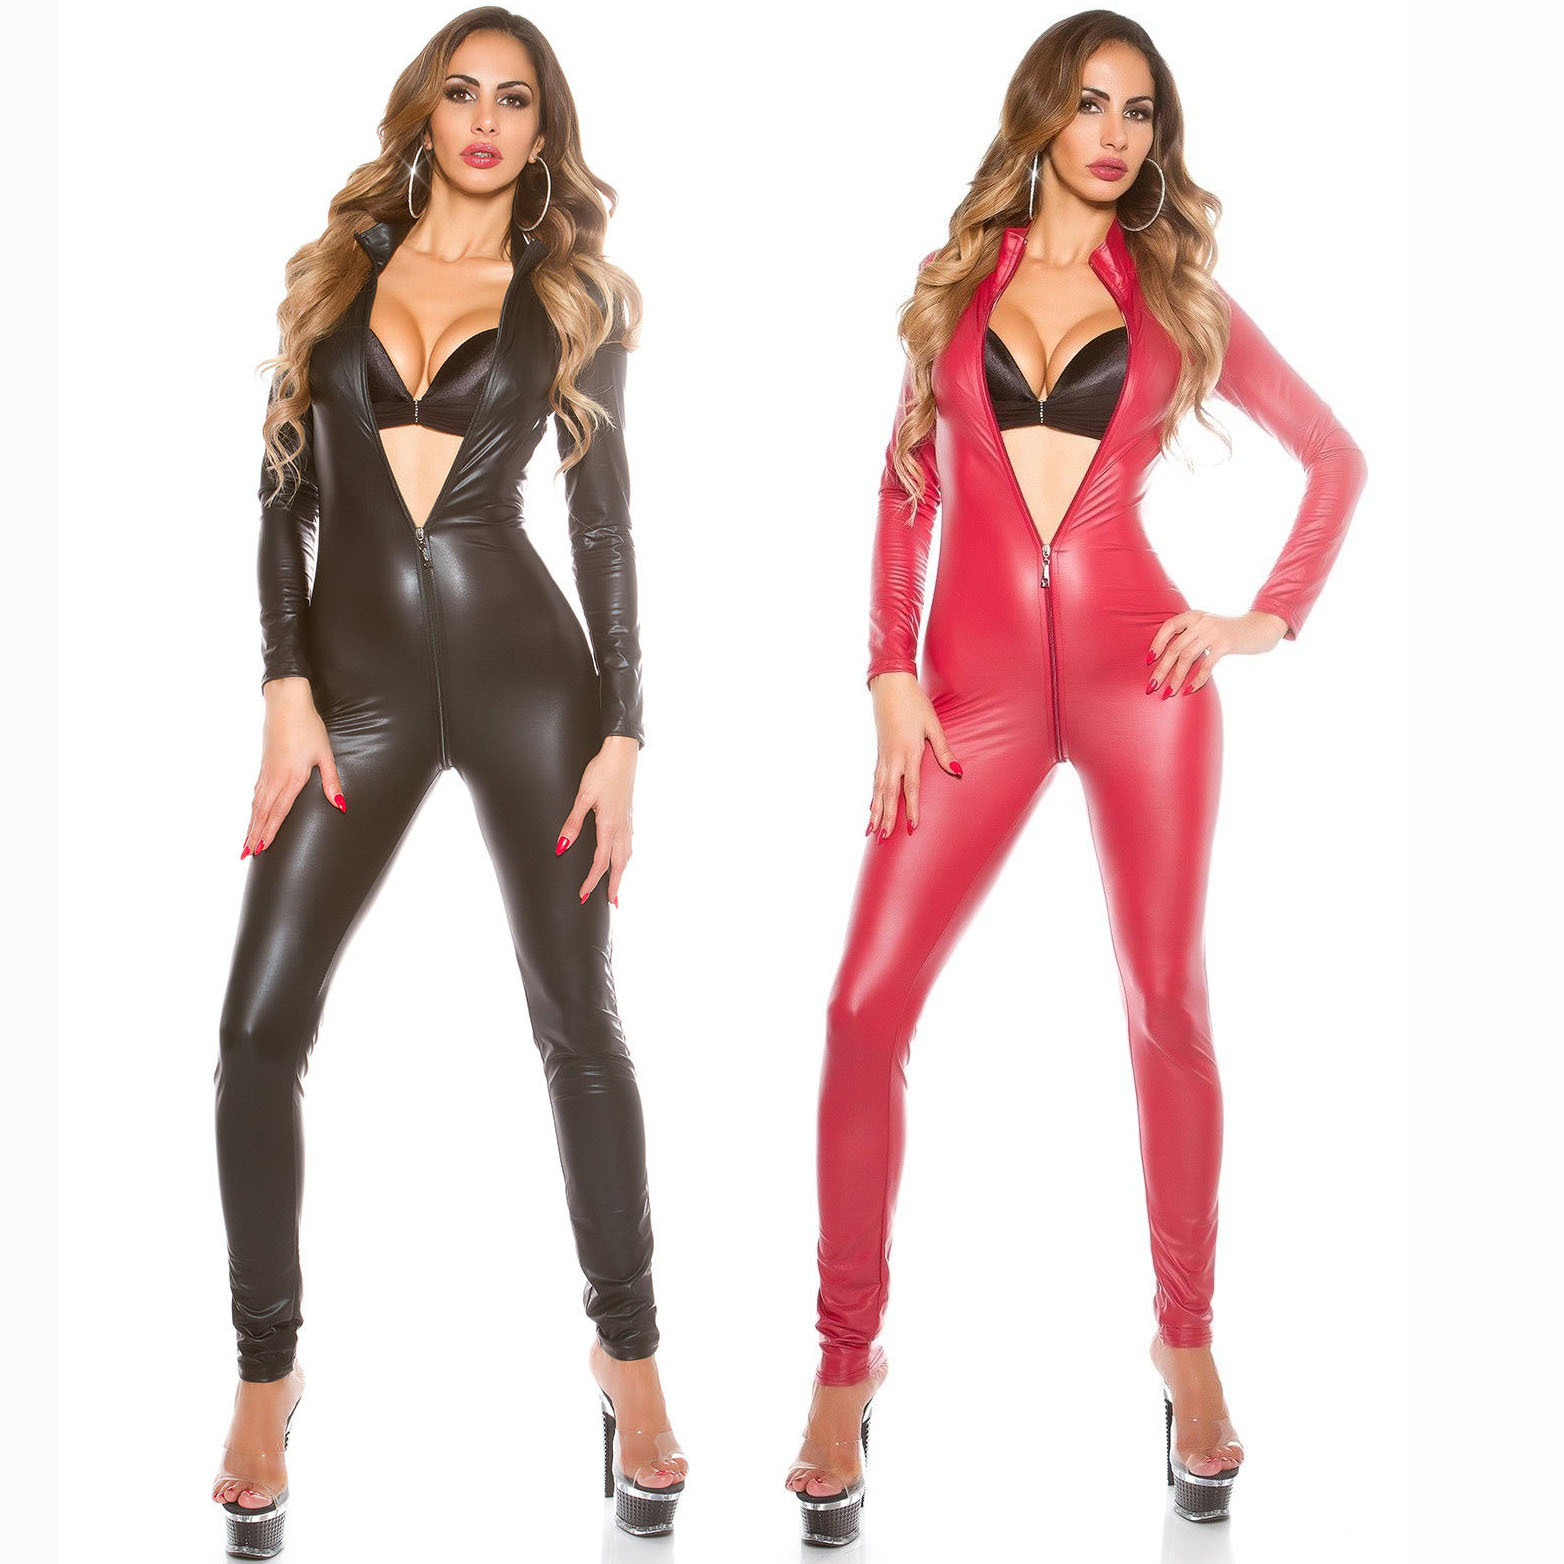 Plus Size 2XL Faux Leather Wetlook Sexy Lingerie Hot Catsuit Women Full Body Pantyhose Long Jumpsuits Latex Vinyl Clubwear